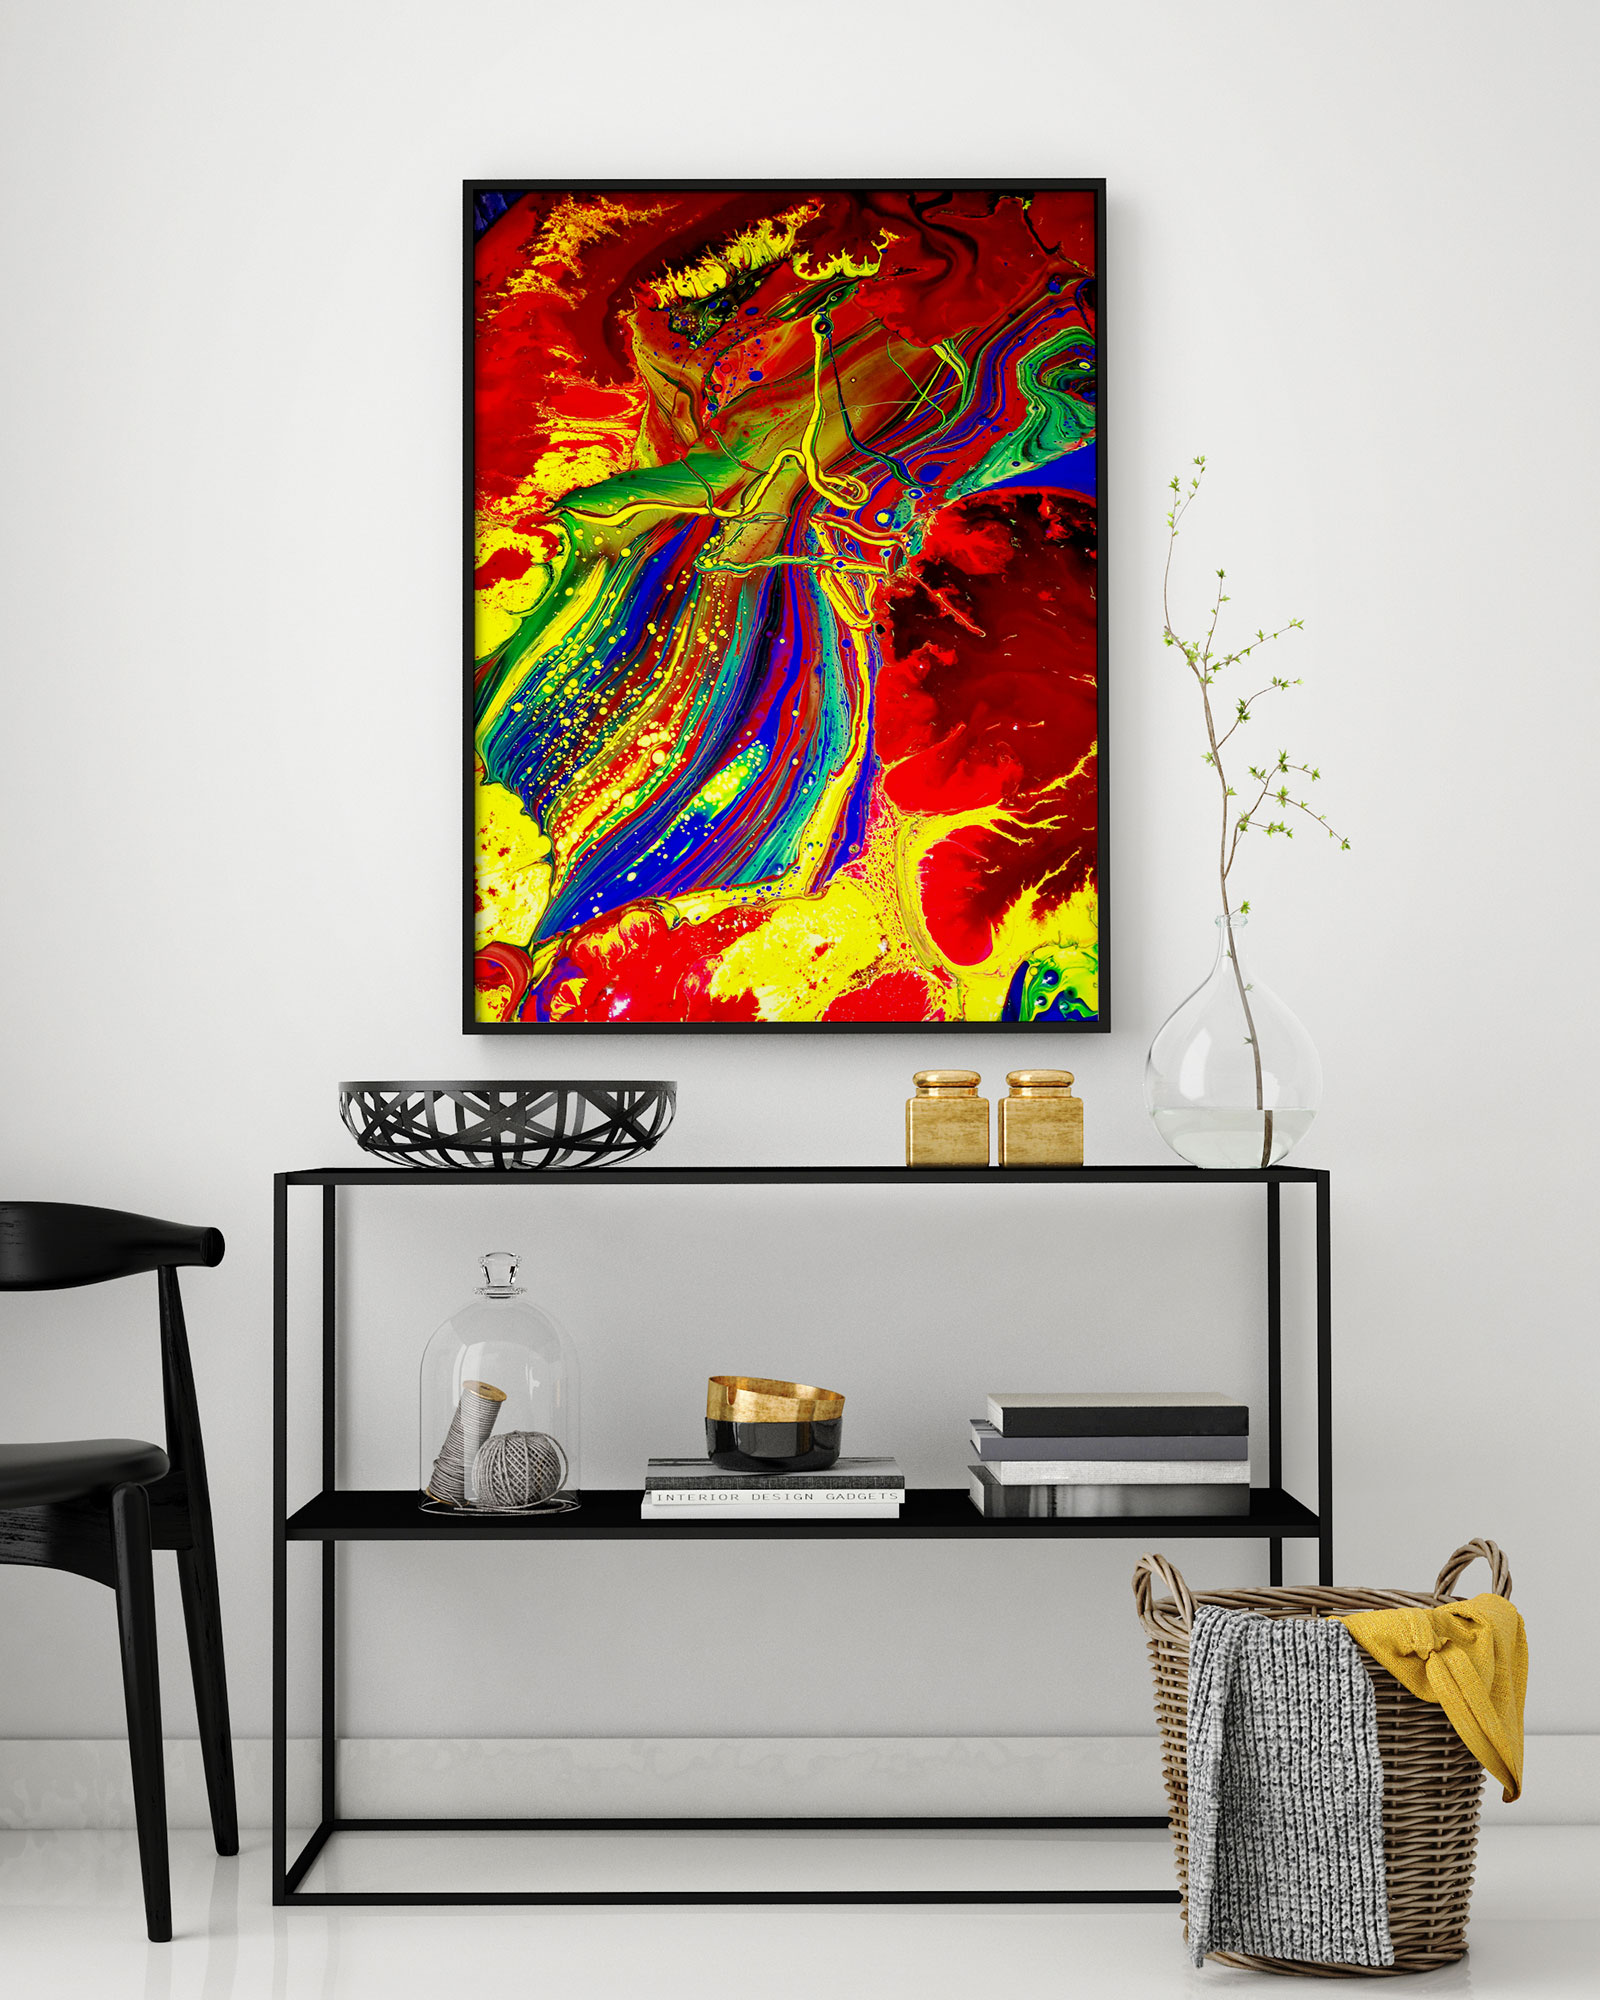 One-of-a-kind, limited edition Ink Waste Art prints.